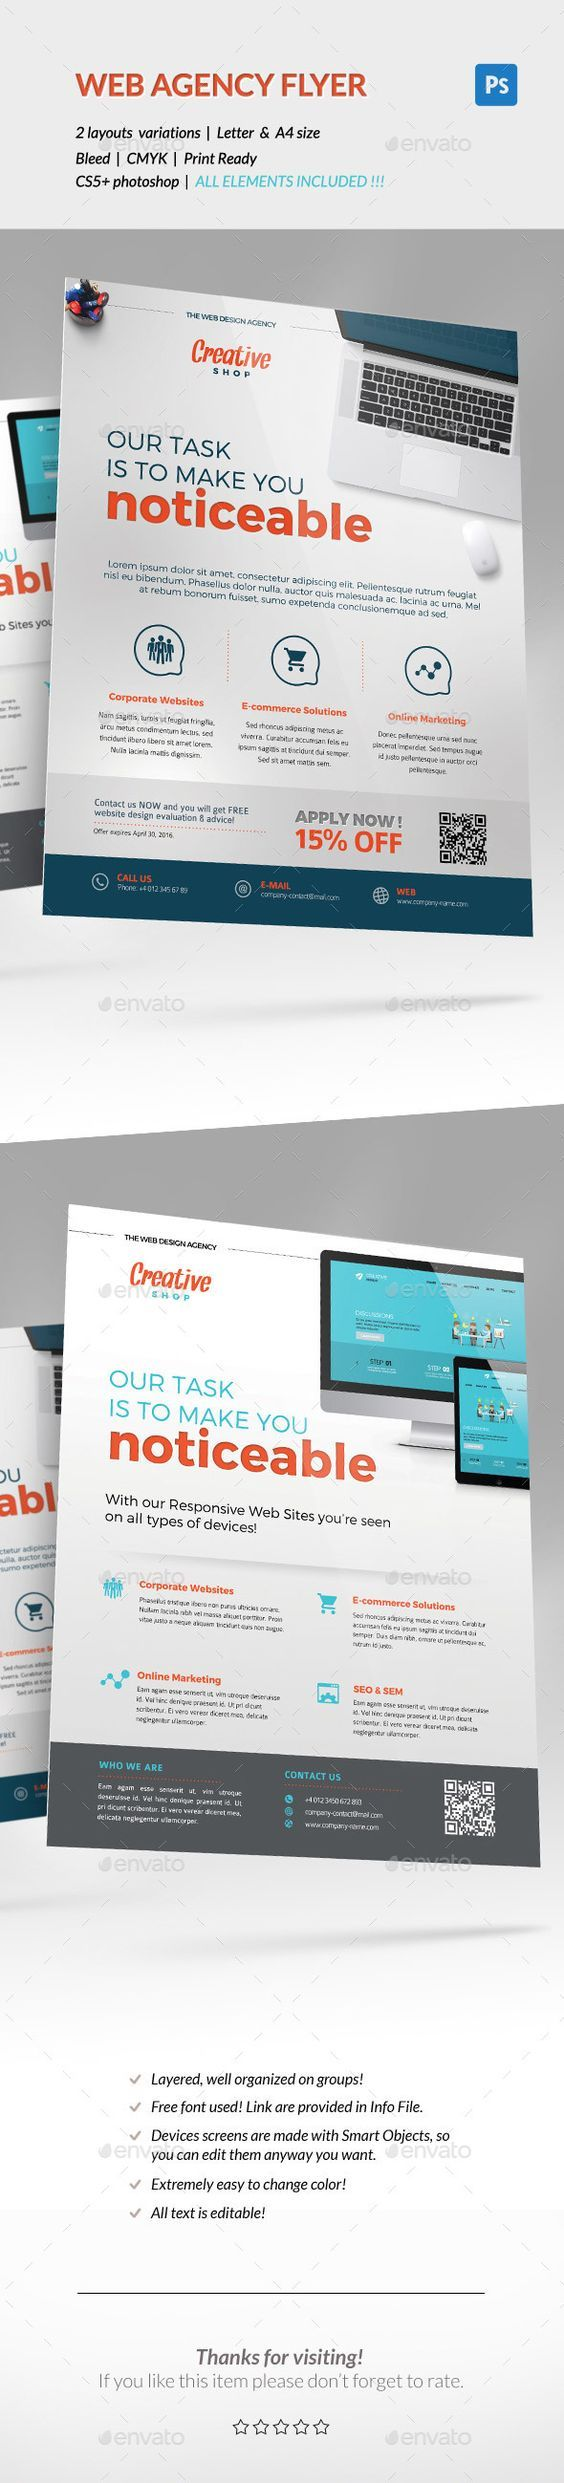 Corporate Flyer U2013 Web Design Agency Promote Your Creative Agency Wits This  Flyer Template. In